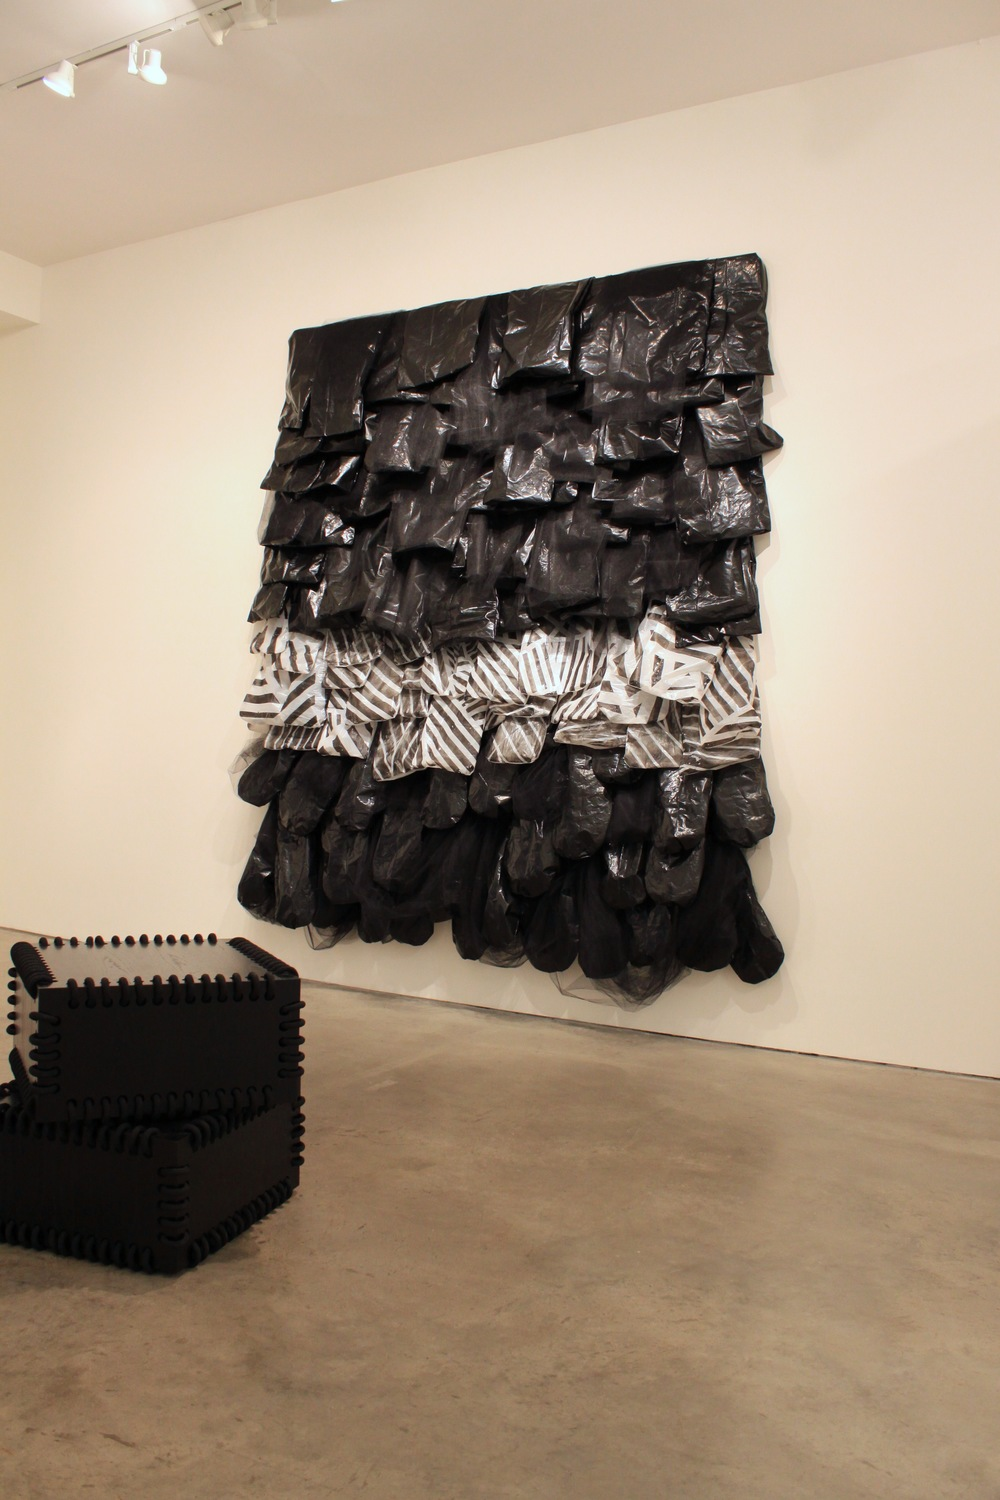 Installation View Snake Pit - 2012 - acrylic site-specific commission Monk Box - 2012 - wood, paint, rope 26 x 26 x 14 in